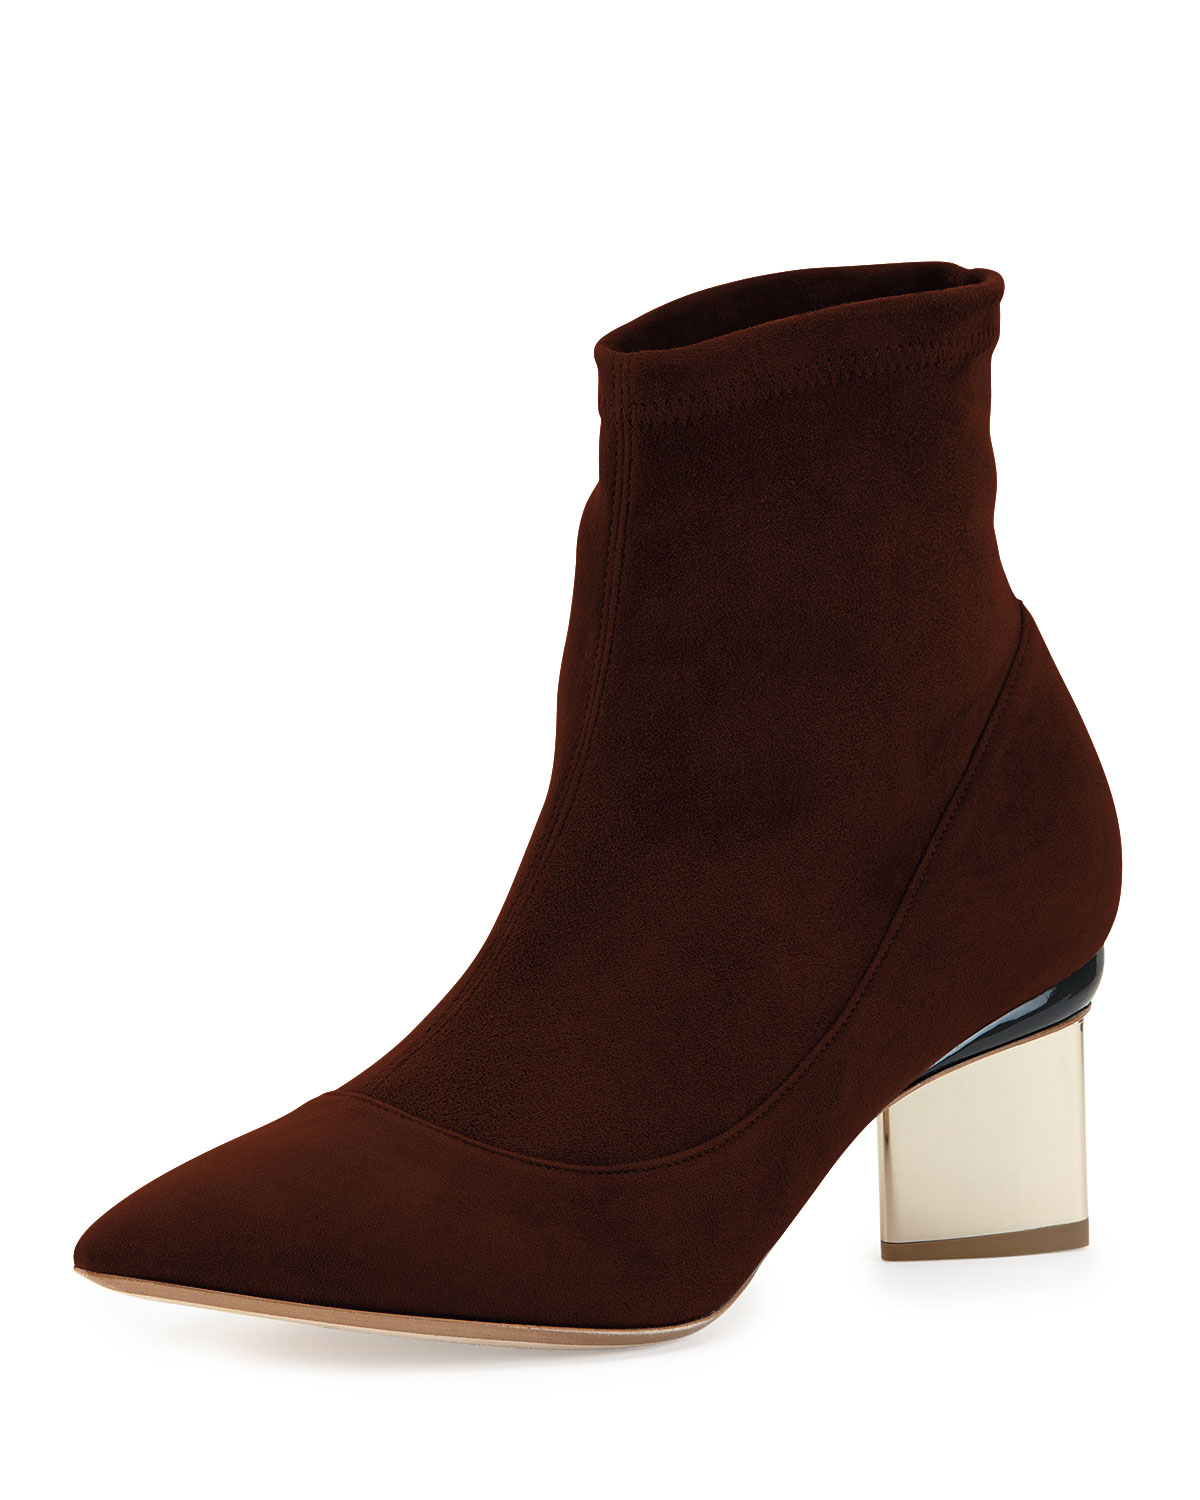 Nicholas kirkwood Suede Point-toe Ankle Boot in Brown | Lyst